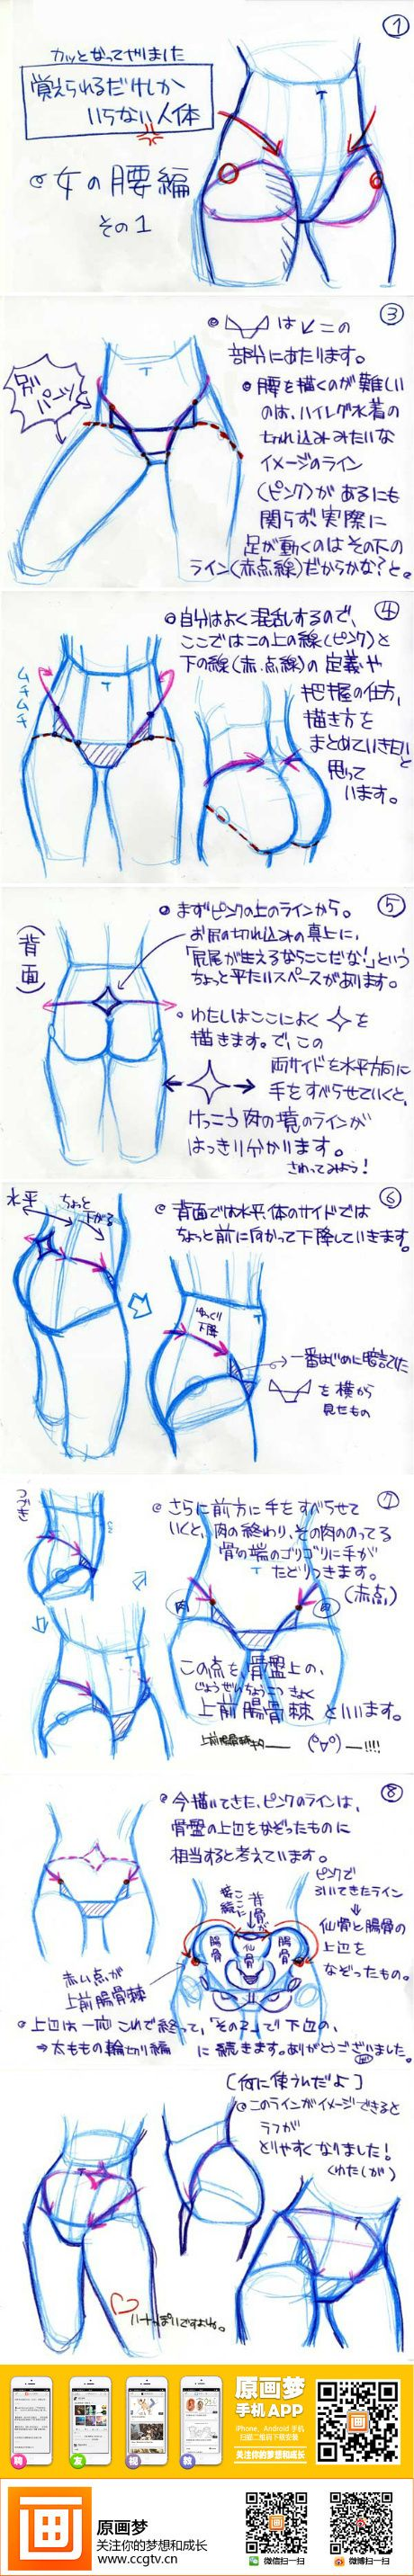 I don't have a clue what this says, but useful for drawing.